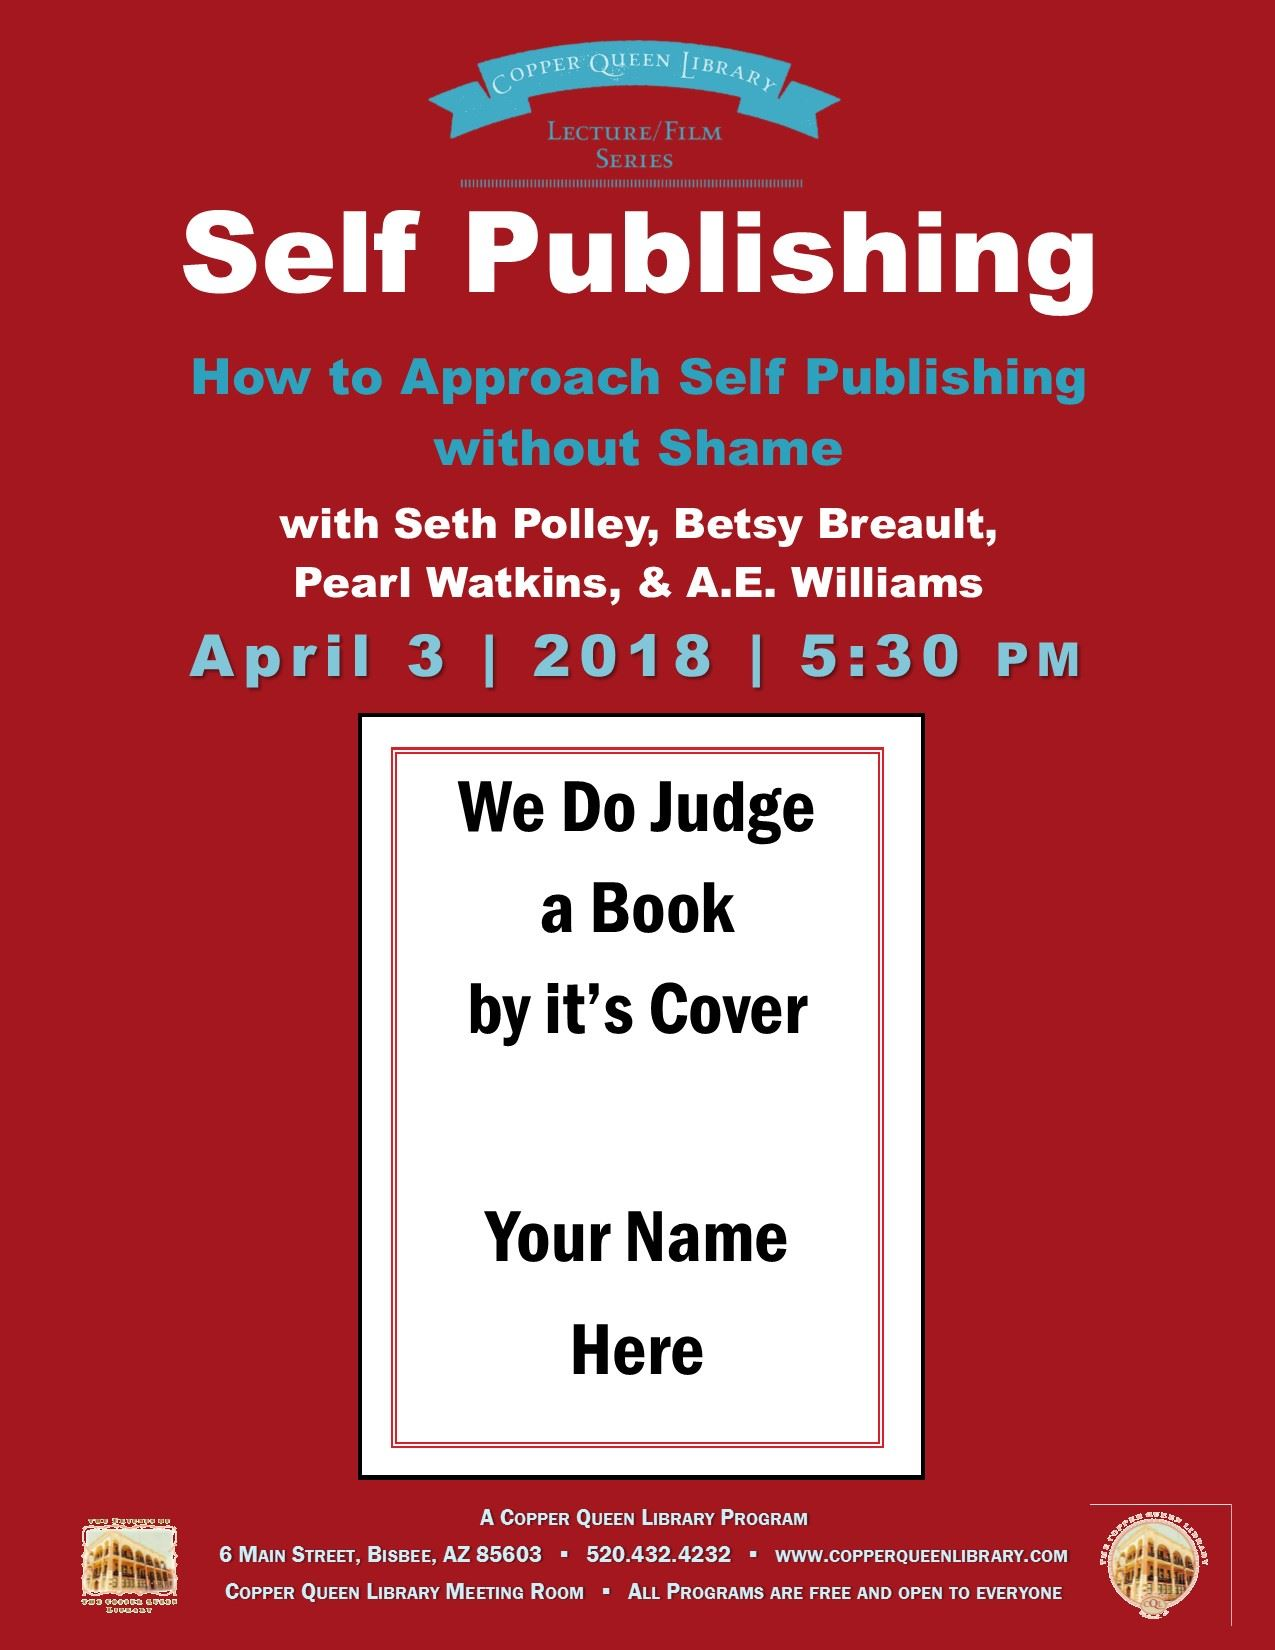 SELF PUBLISHUING 4.3.18.2018 8.5 x 11